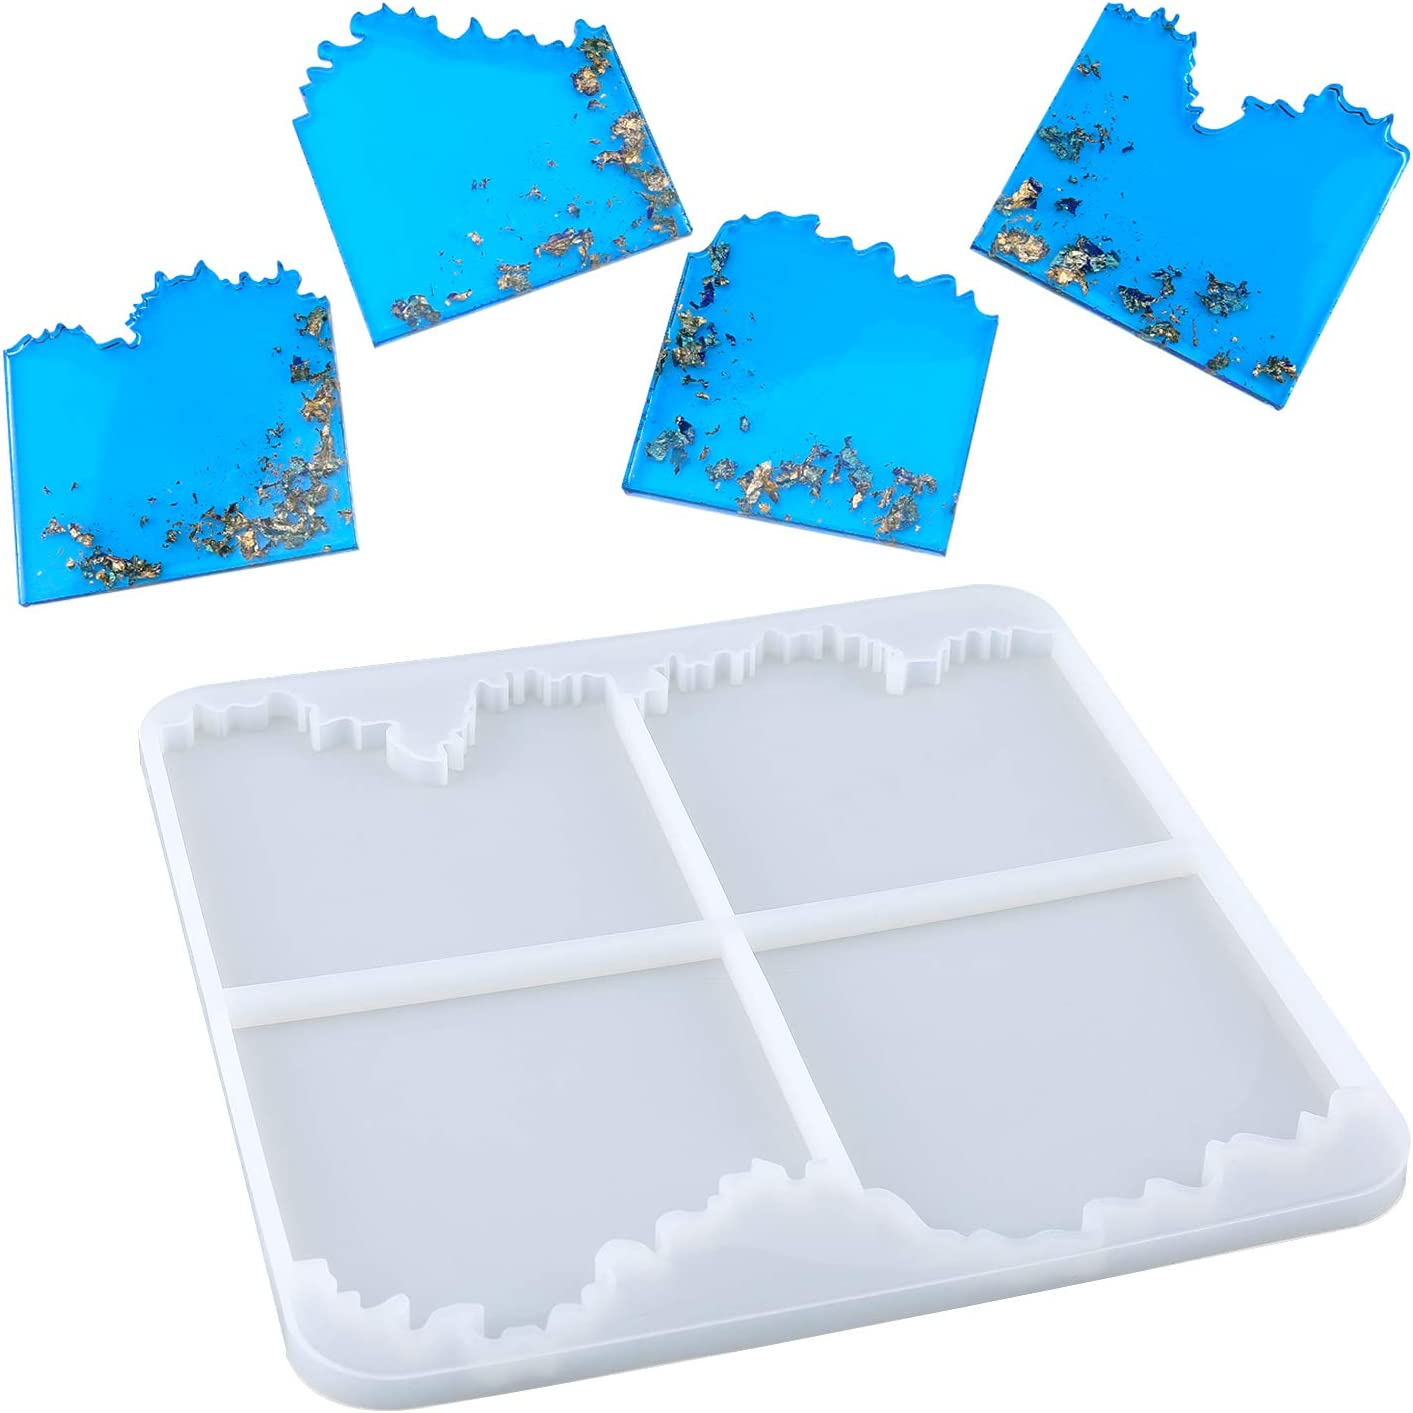 LUTER Resin Coasters Mold DIY Coaster Silicone M Square for Bargain A surprise price is realized